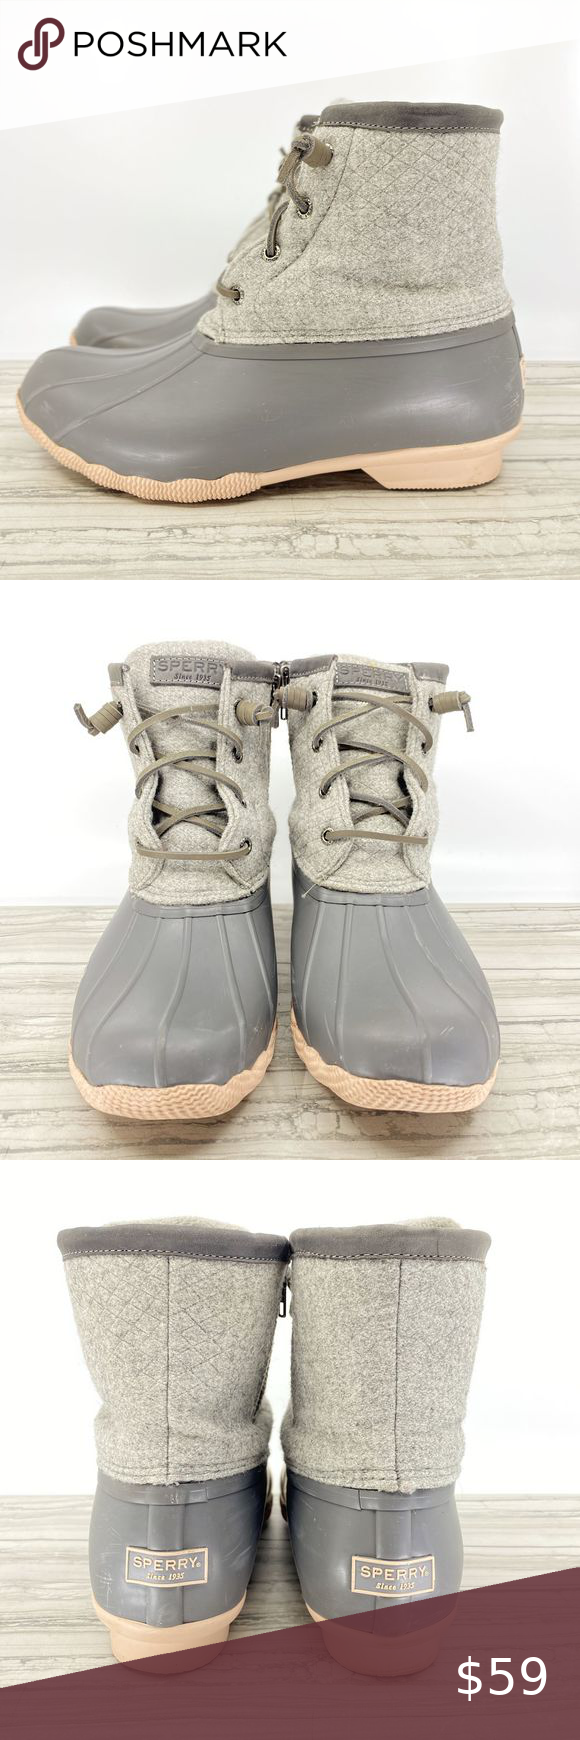 Sperry Saltwater Wool In 2020  Sperrys, Boots, Clothes Design-7635